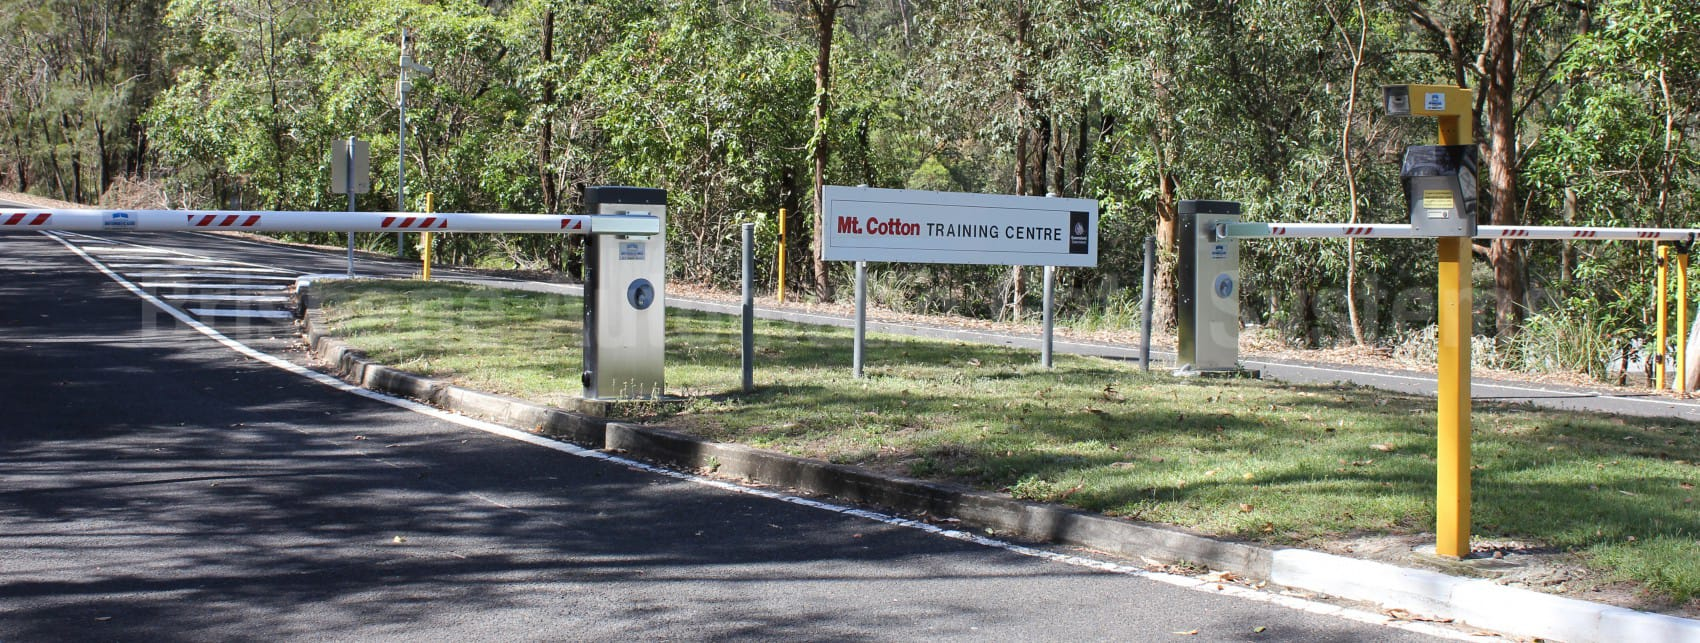 Boom Gate Pictures Gallery Brisbane Automatic Gate Systems